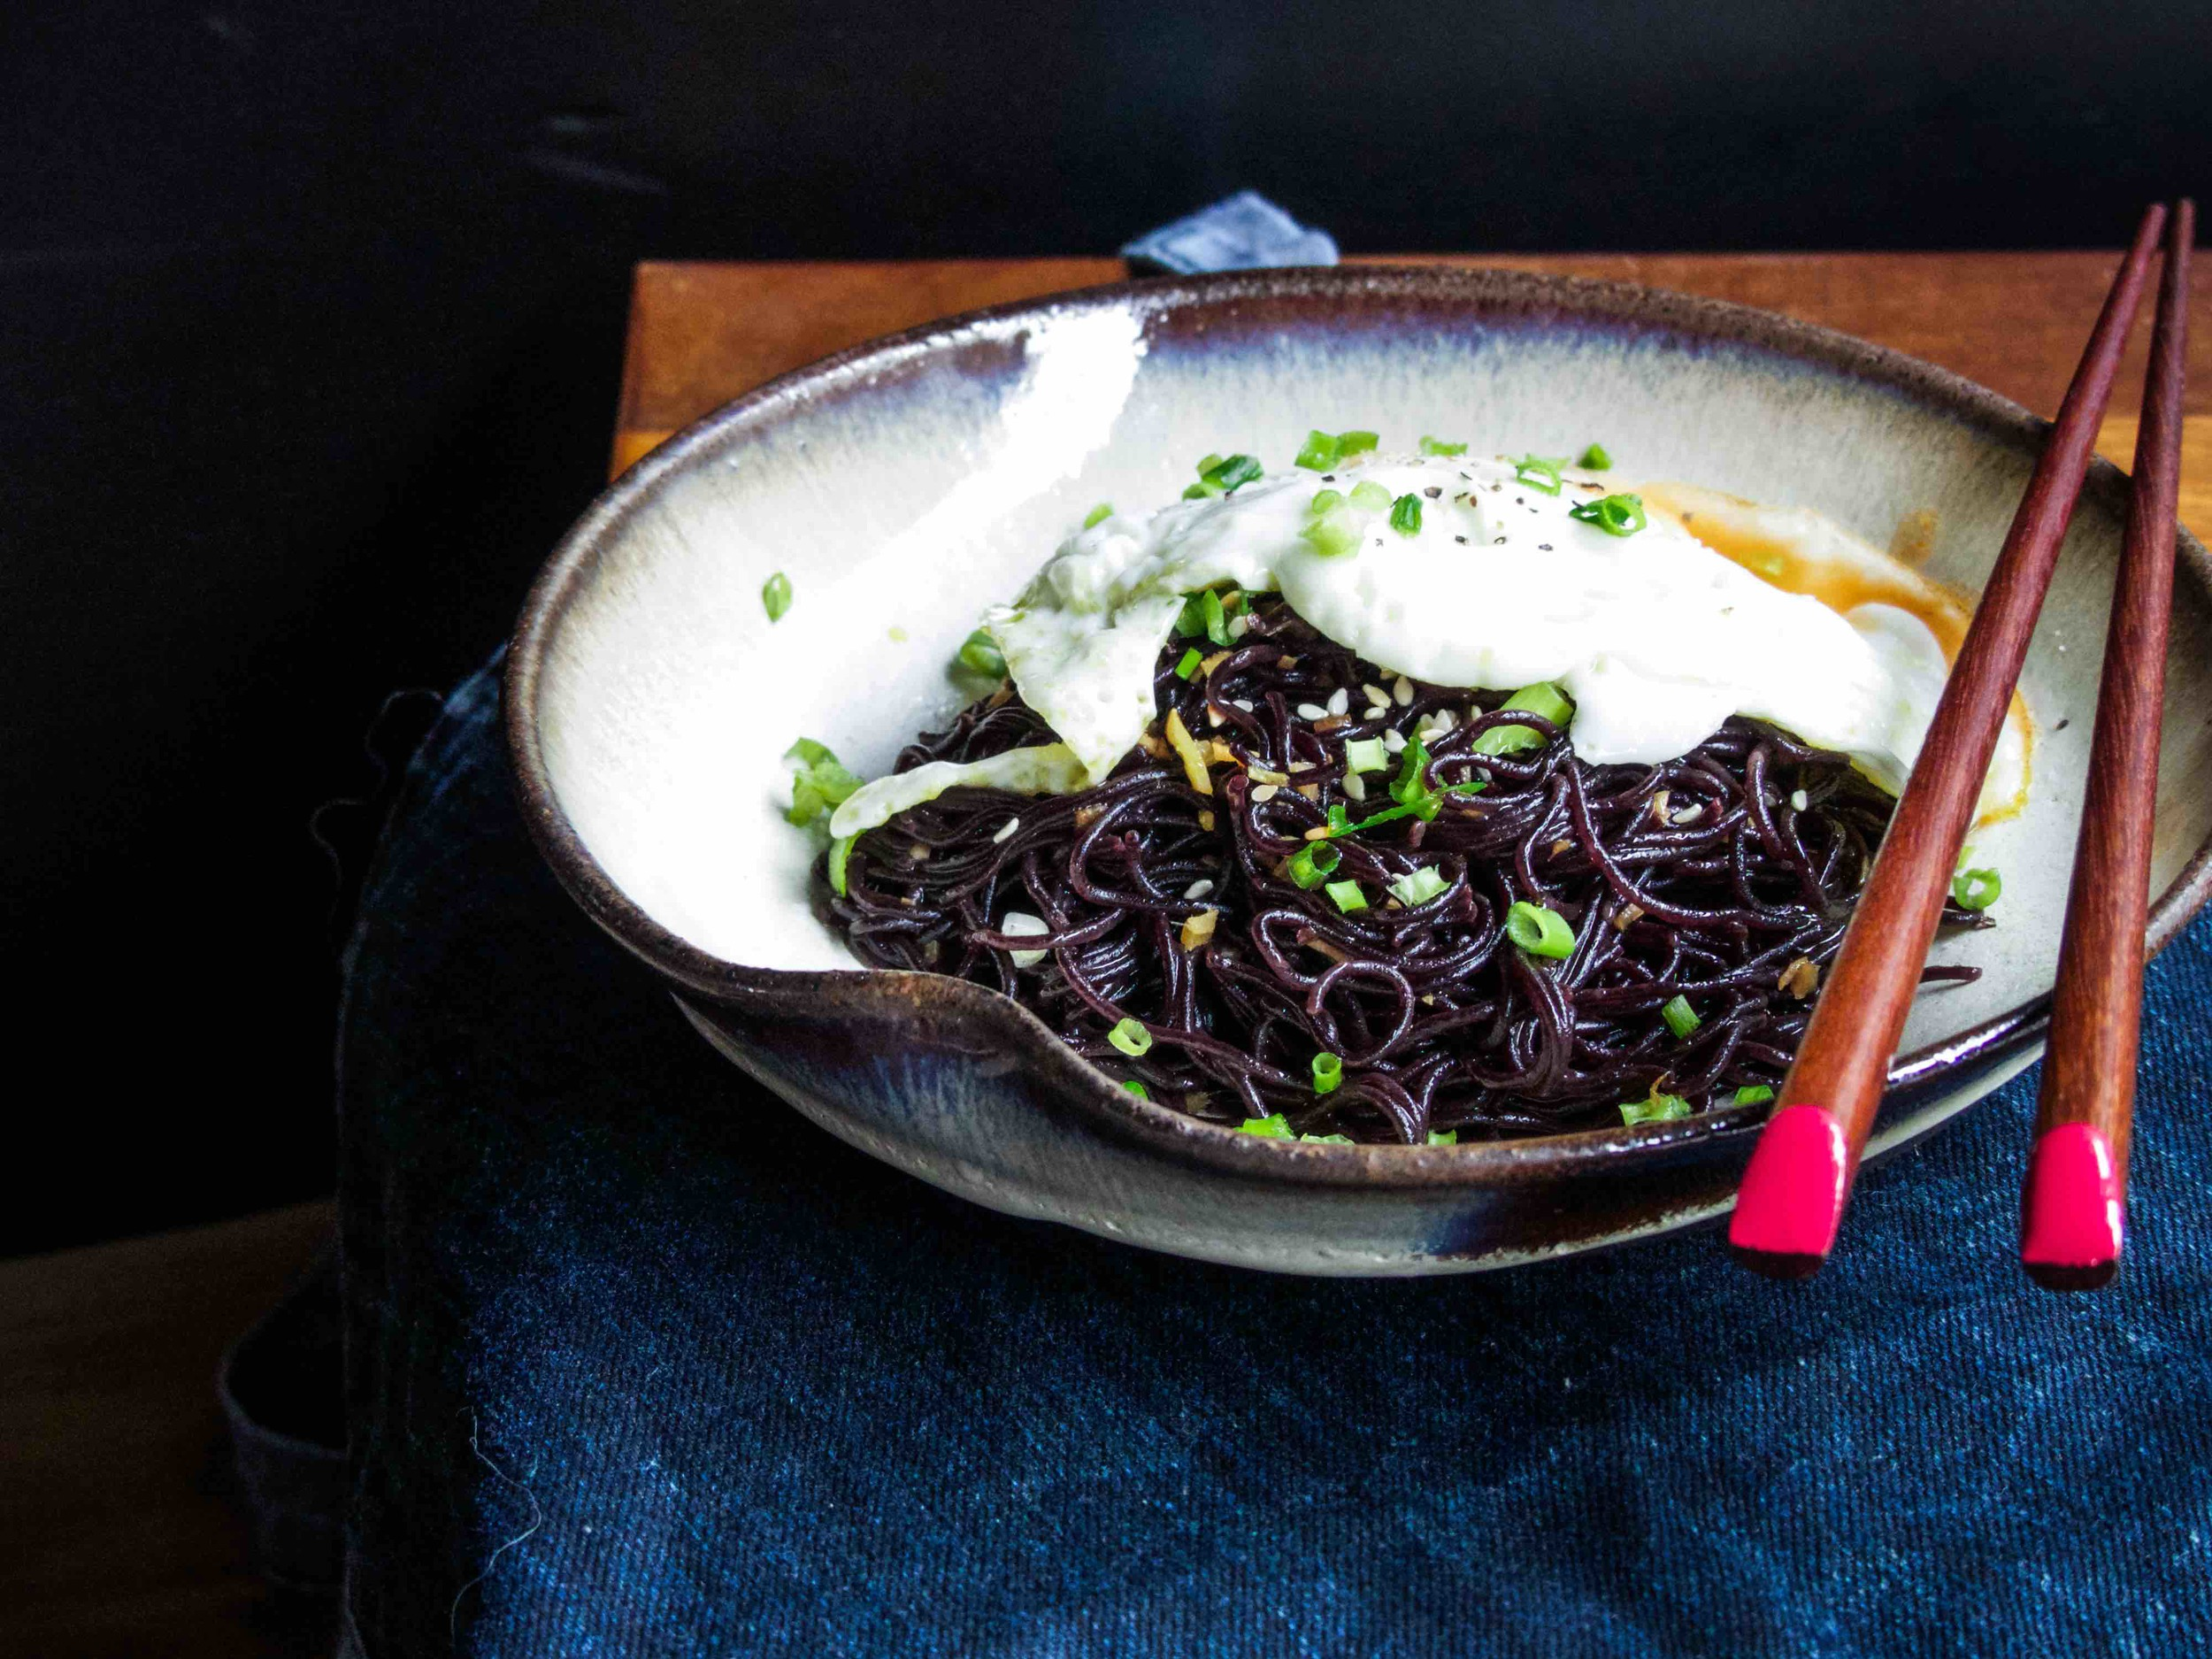 "Recipe for ""the budget ramen dish""    Servings: 1 person  Preparation Time: 2 minutes  Cooking Time: 3-4 minutes   Ingredients:    1 black rice ramen cake, cooked according to the packaging label (3 minutes)  1/2 garlic clove, finely chopped  1 tsp grated fresh ginger  1 tbsp chopped spring onion  2 tbsp soy sauce  1 tbsp honey  1 tsp rice vinegar  1 tsp sesame oil  1 tsp sesame seeds  1 egg, sunny side up  hot sauce    Instructions:      1) To make the sauce to go with the cooked ramen, simply add sesame oil, soy sauce, honey, rice vinegar, garlic, and ginger.  Mix well.      2) Coat the ramen with sauce and add an egg.  Garnish with sesame seeds and spring onion.  Add a dash of hot sauce to give an extra kick of this simple dish before serving."